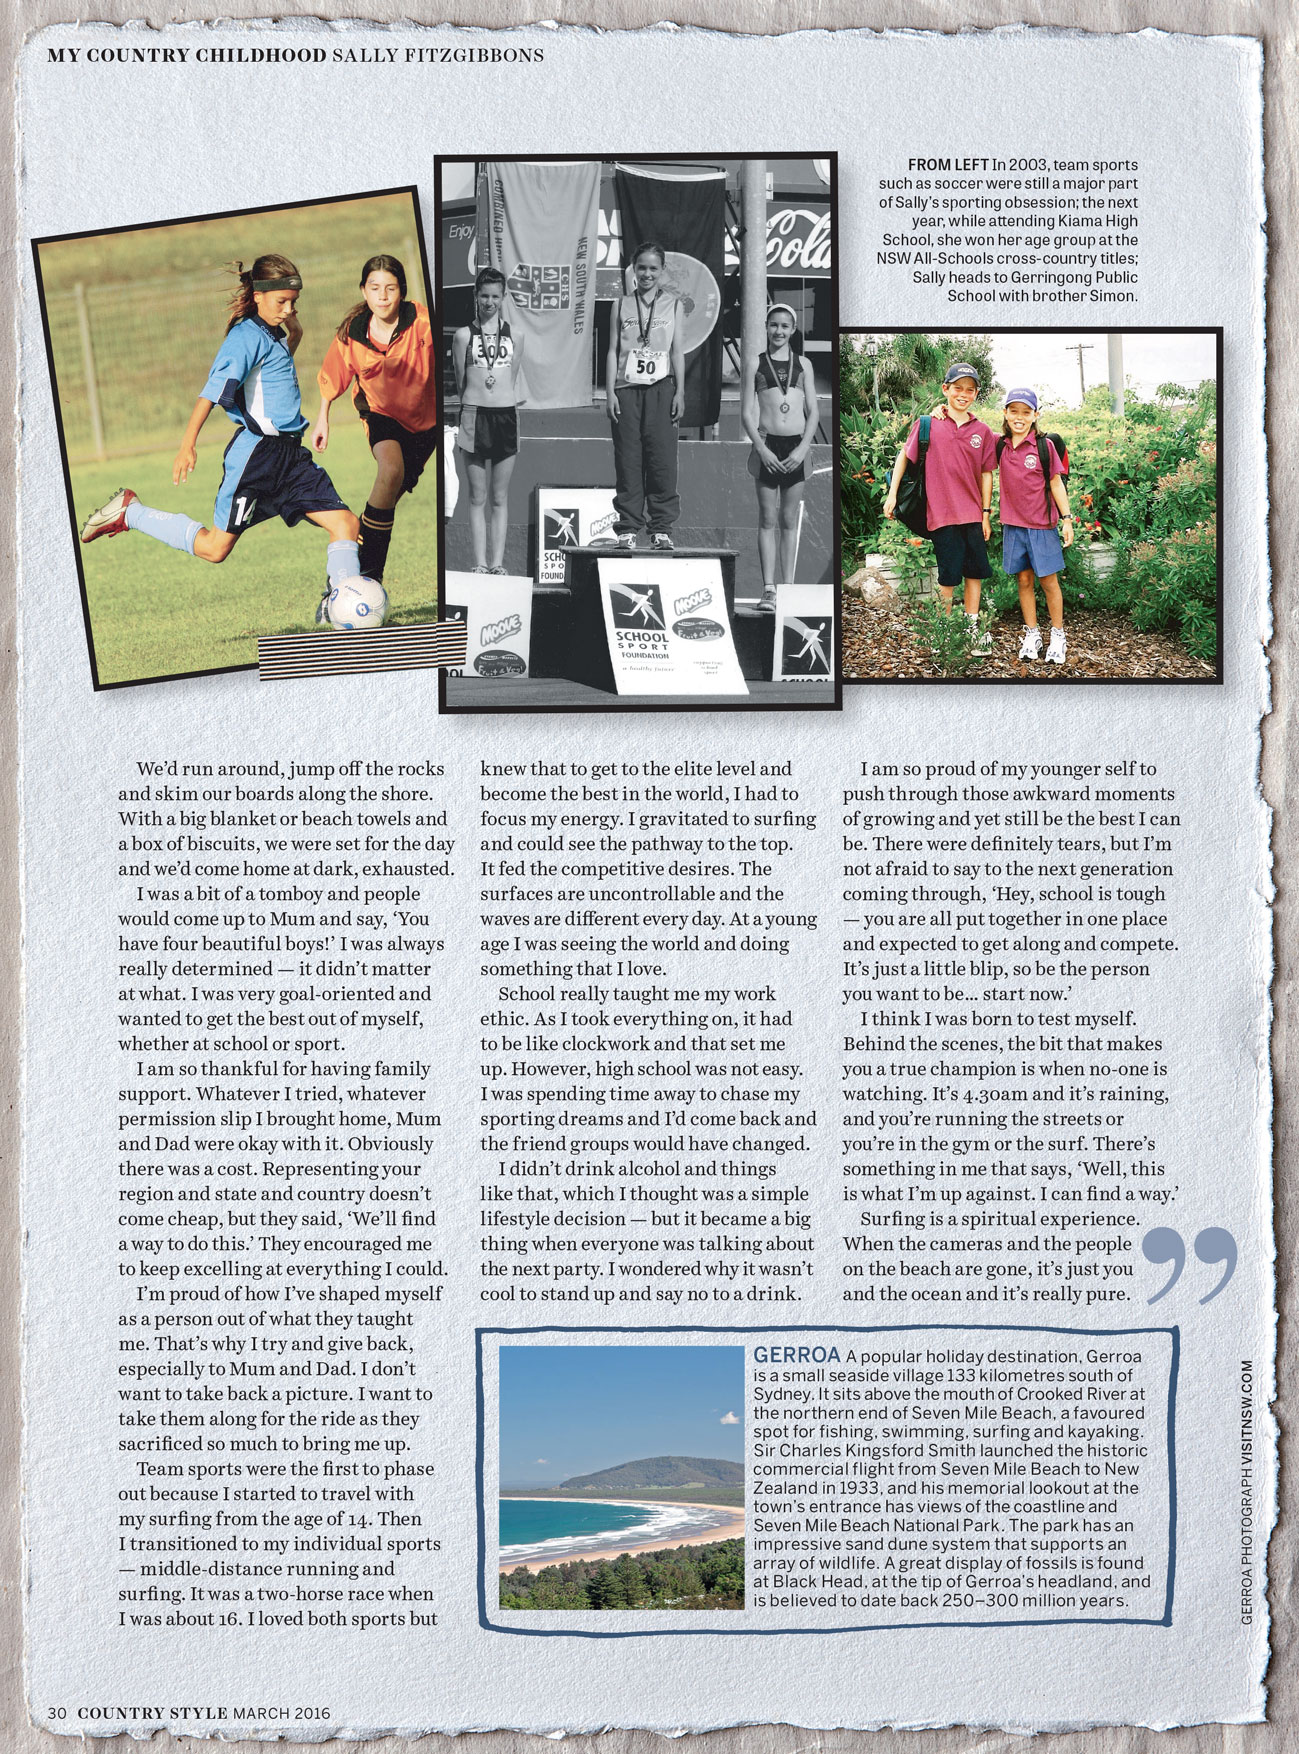 Australian+Country+Style+MYCC+Sally+Fitzgibbons+March+2016+by+claire+mactaggart+1